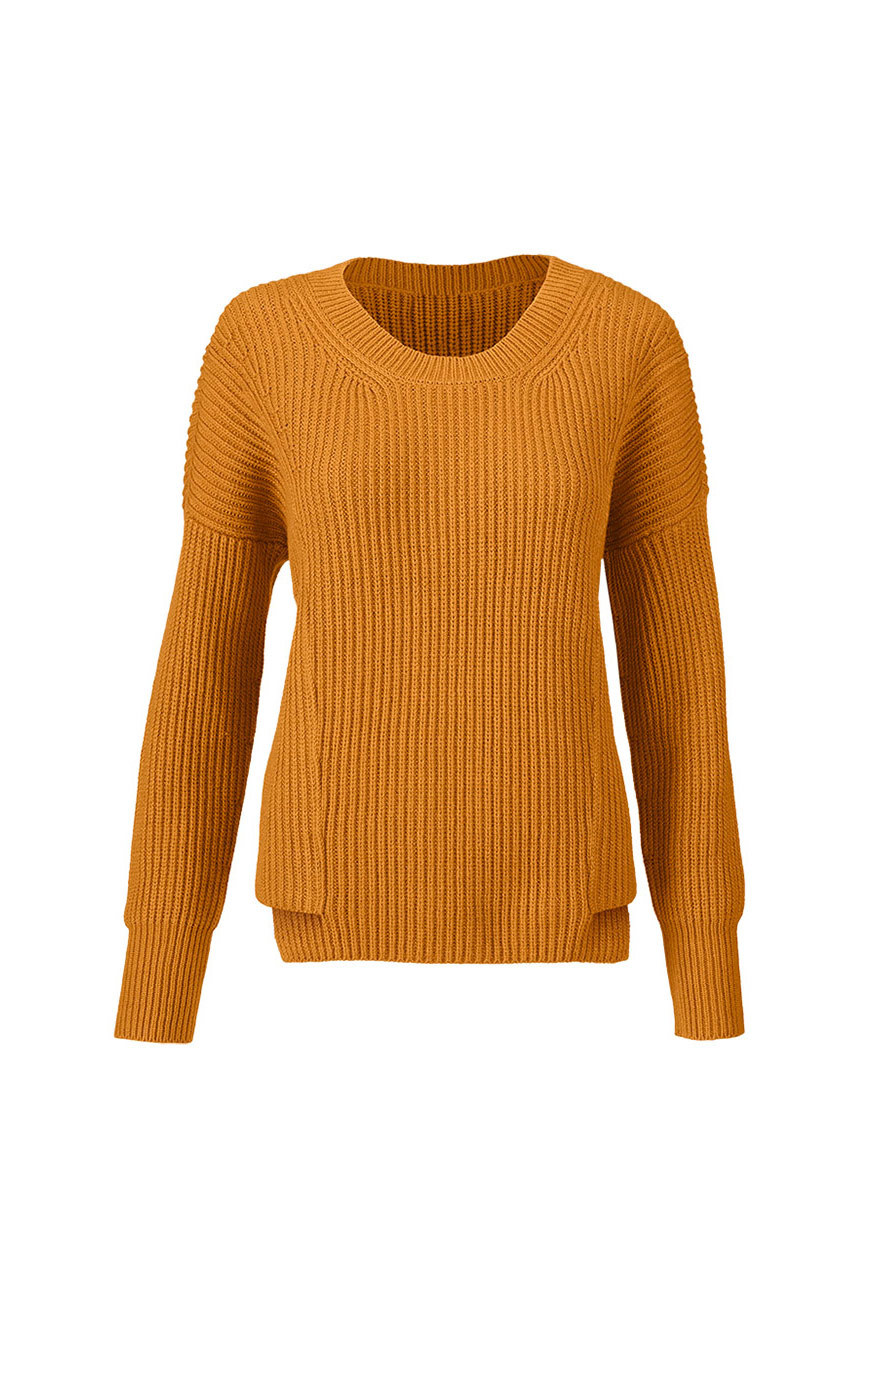 cabi's Step-Up Pullover